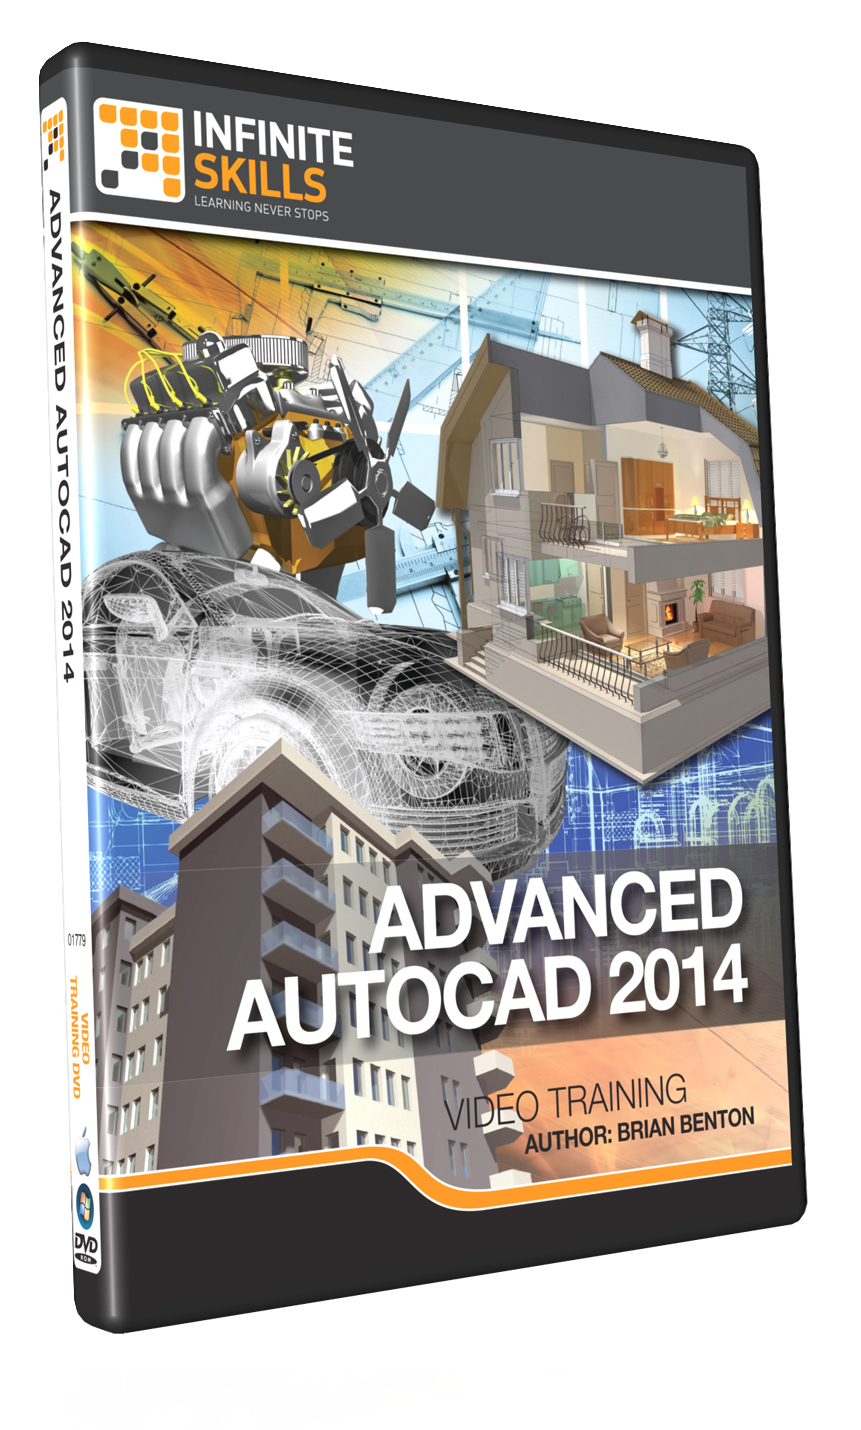 Infiniteskills advanced autocad 2014 tutorial takes cad skills infiniteskills advanced autocad 2014 tutorial takes cad skills to the next level baditri Image collections